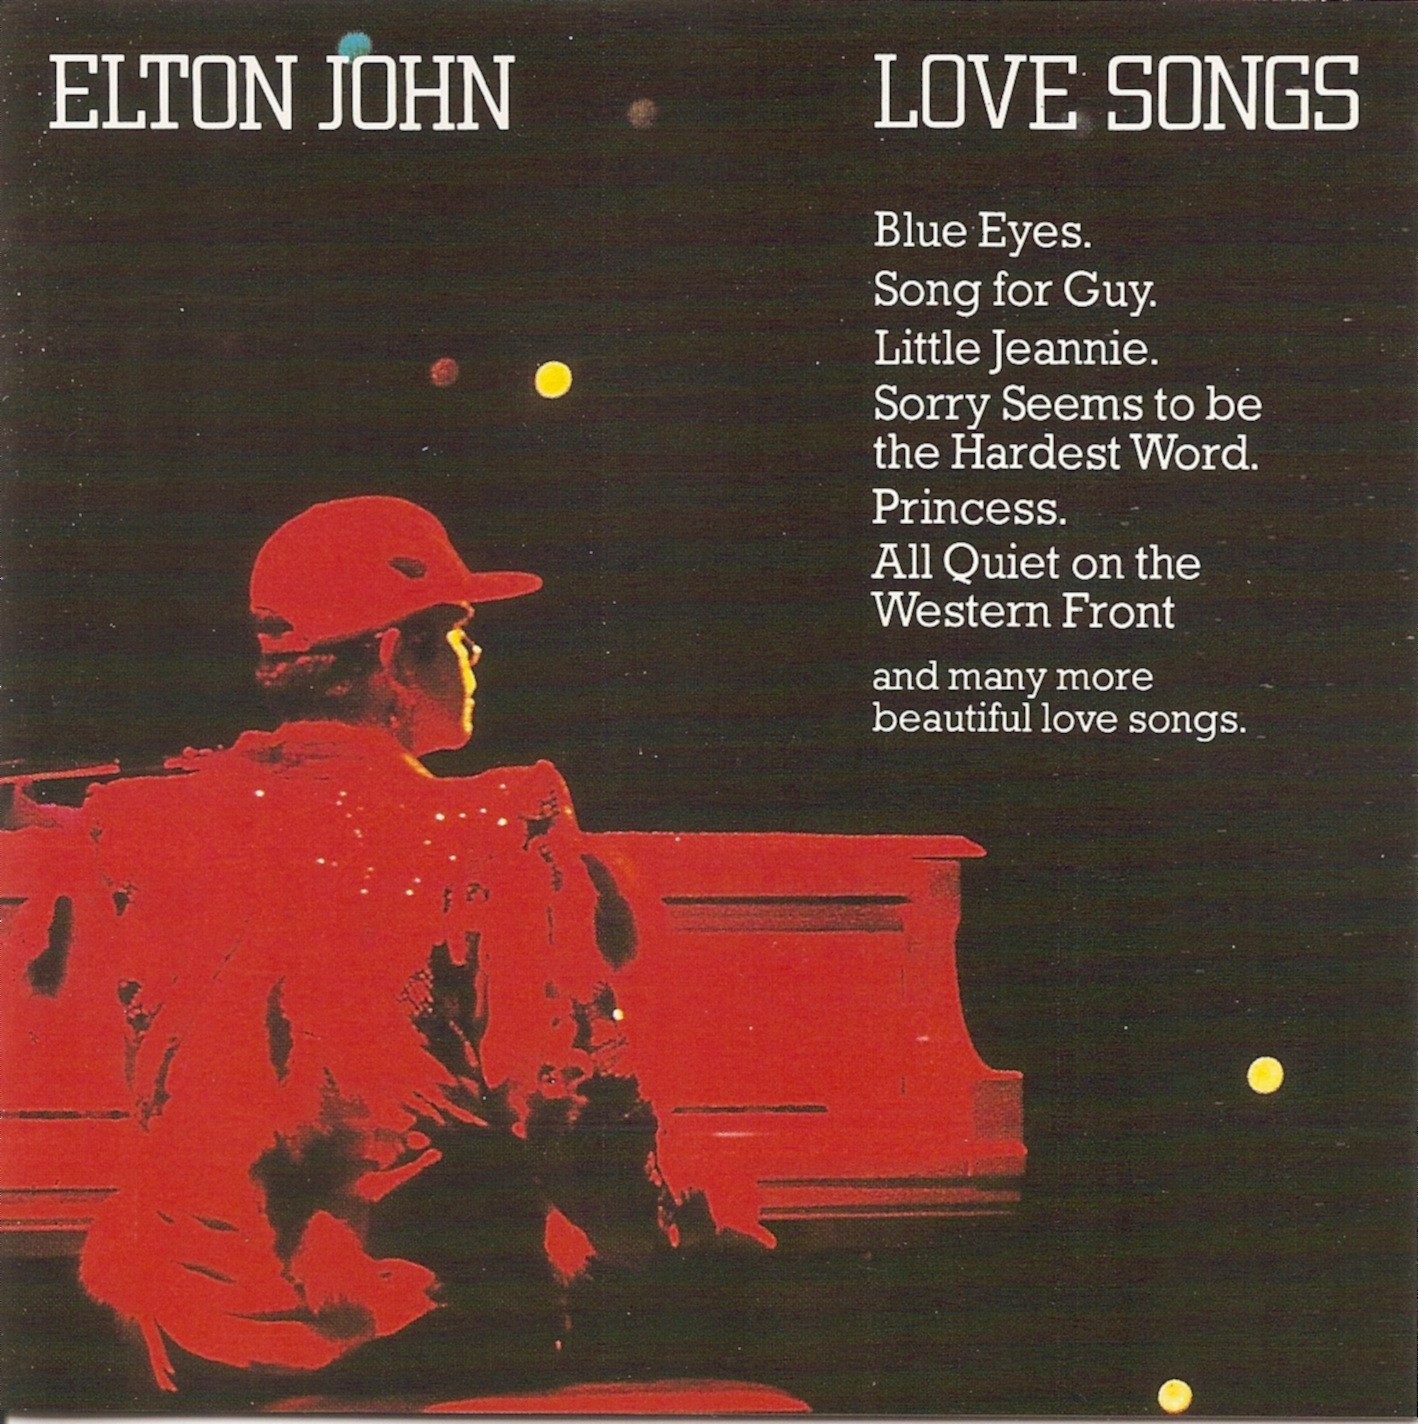 The First Pressing CD Collection: Elton John - Love Songs